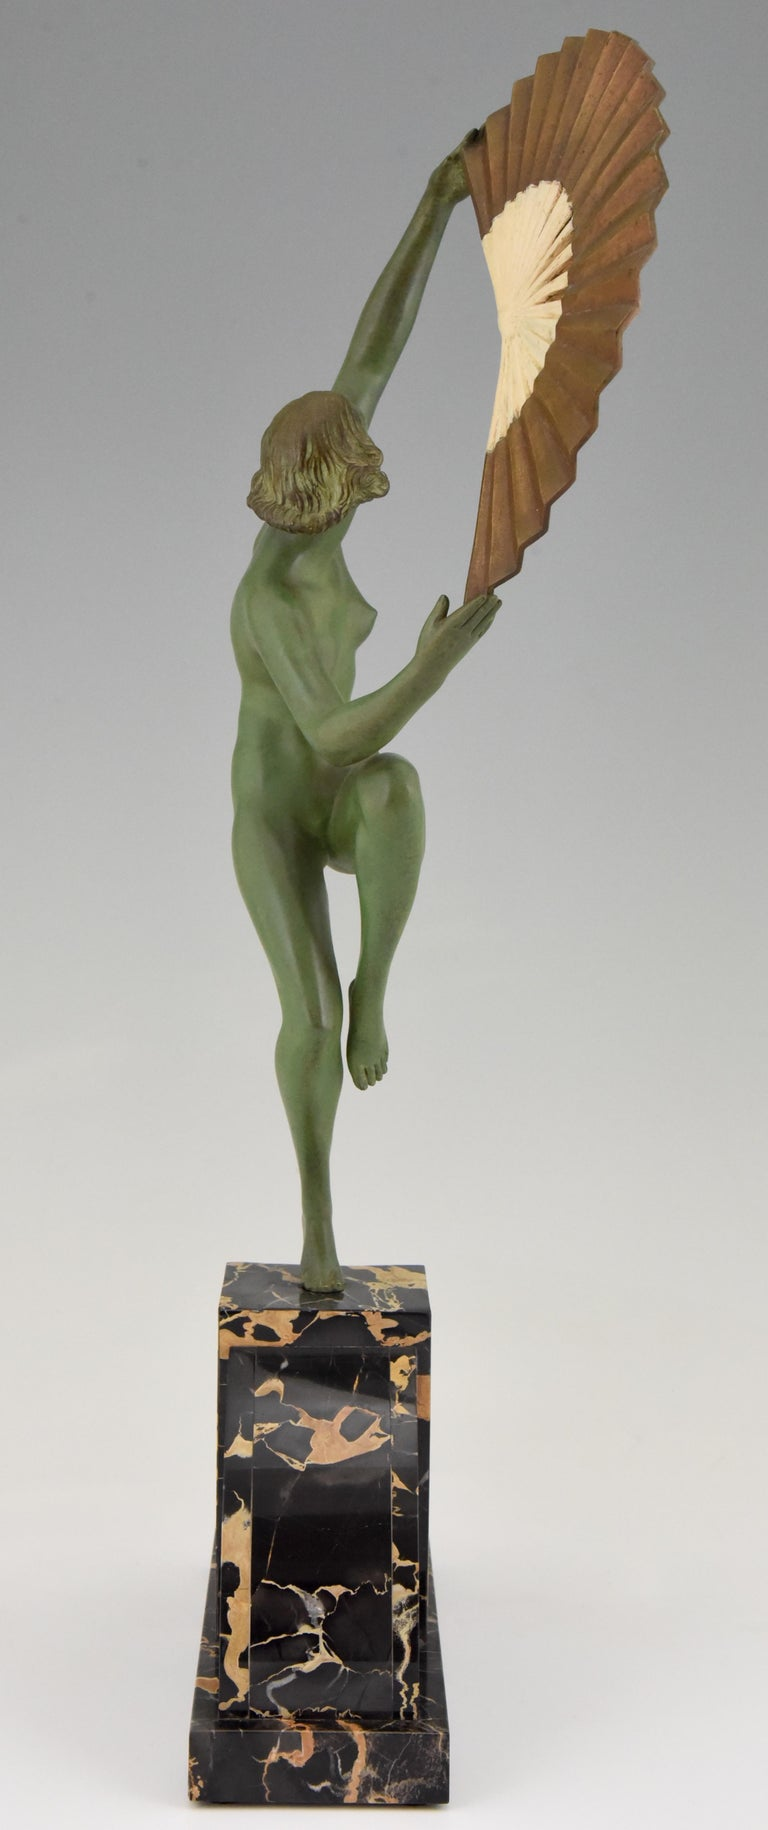 Art Deco Bronze Sculpture Nude Fan Dancer Marcel Andre Bouraine, France, 1925 For Sale 1